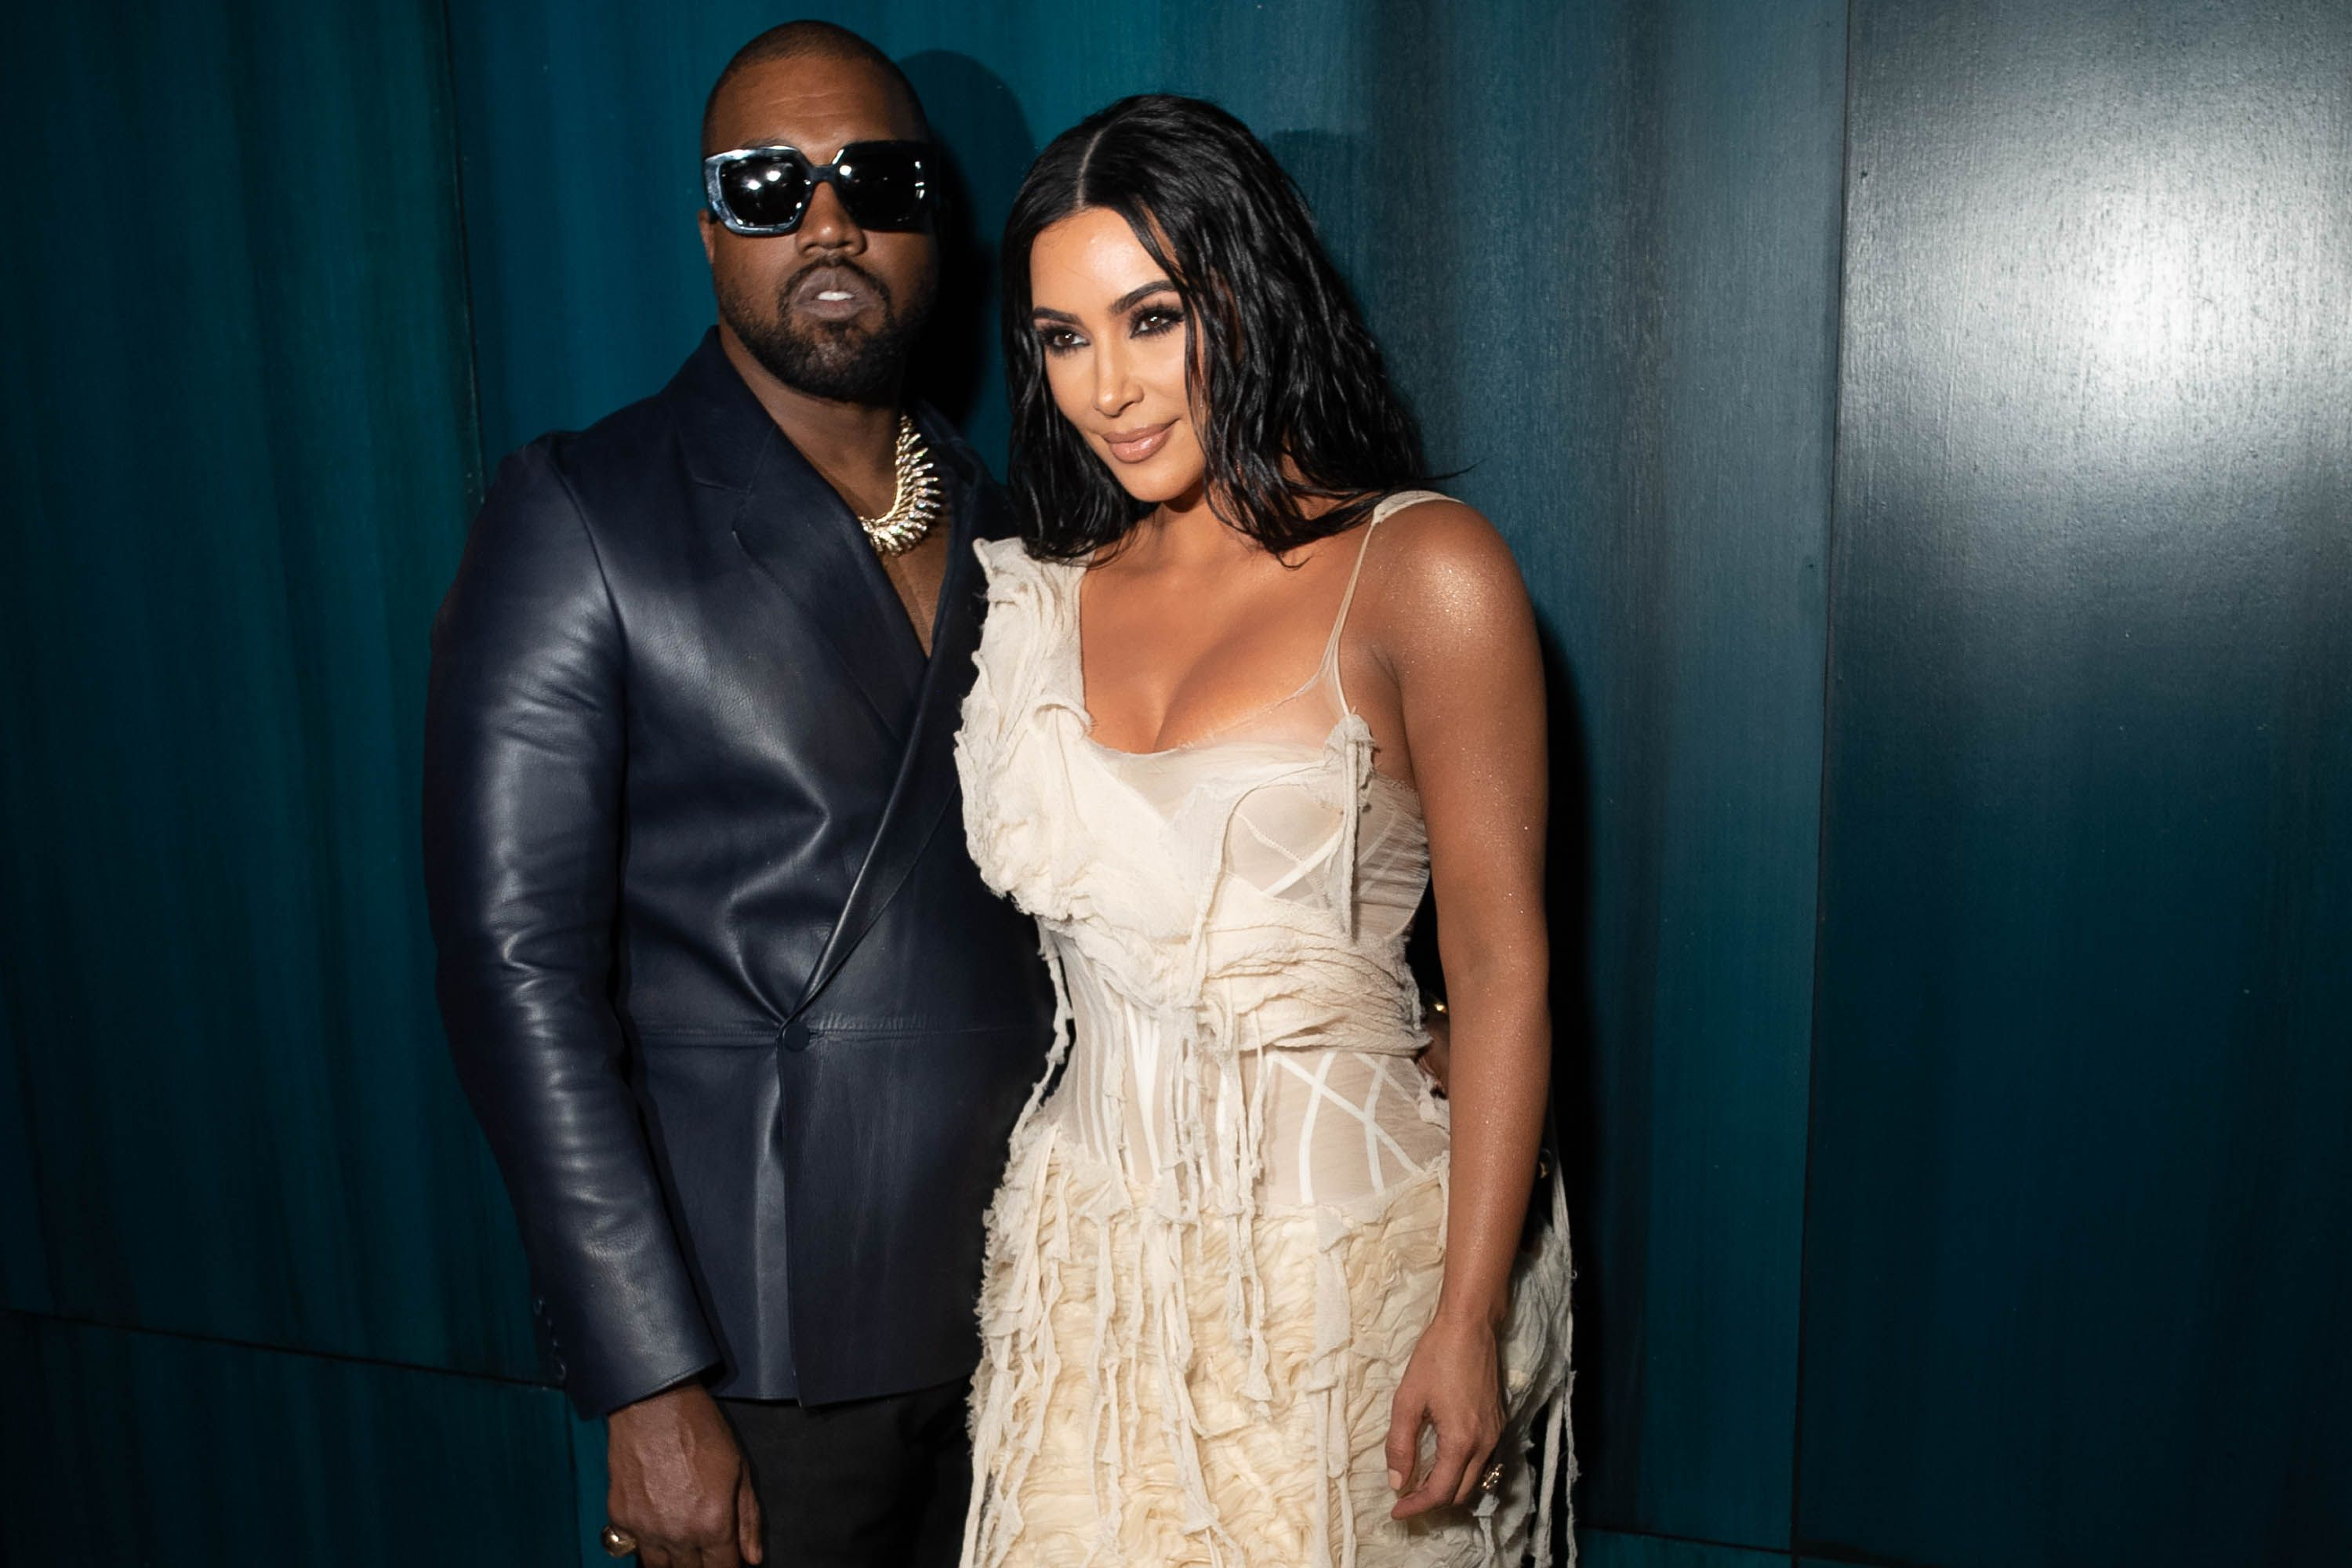 Kim Kardashian And Kanye West Rang In Six Years Of Marriage This Weekend